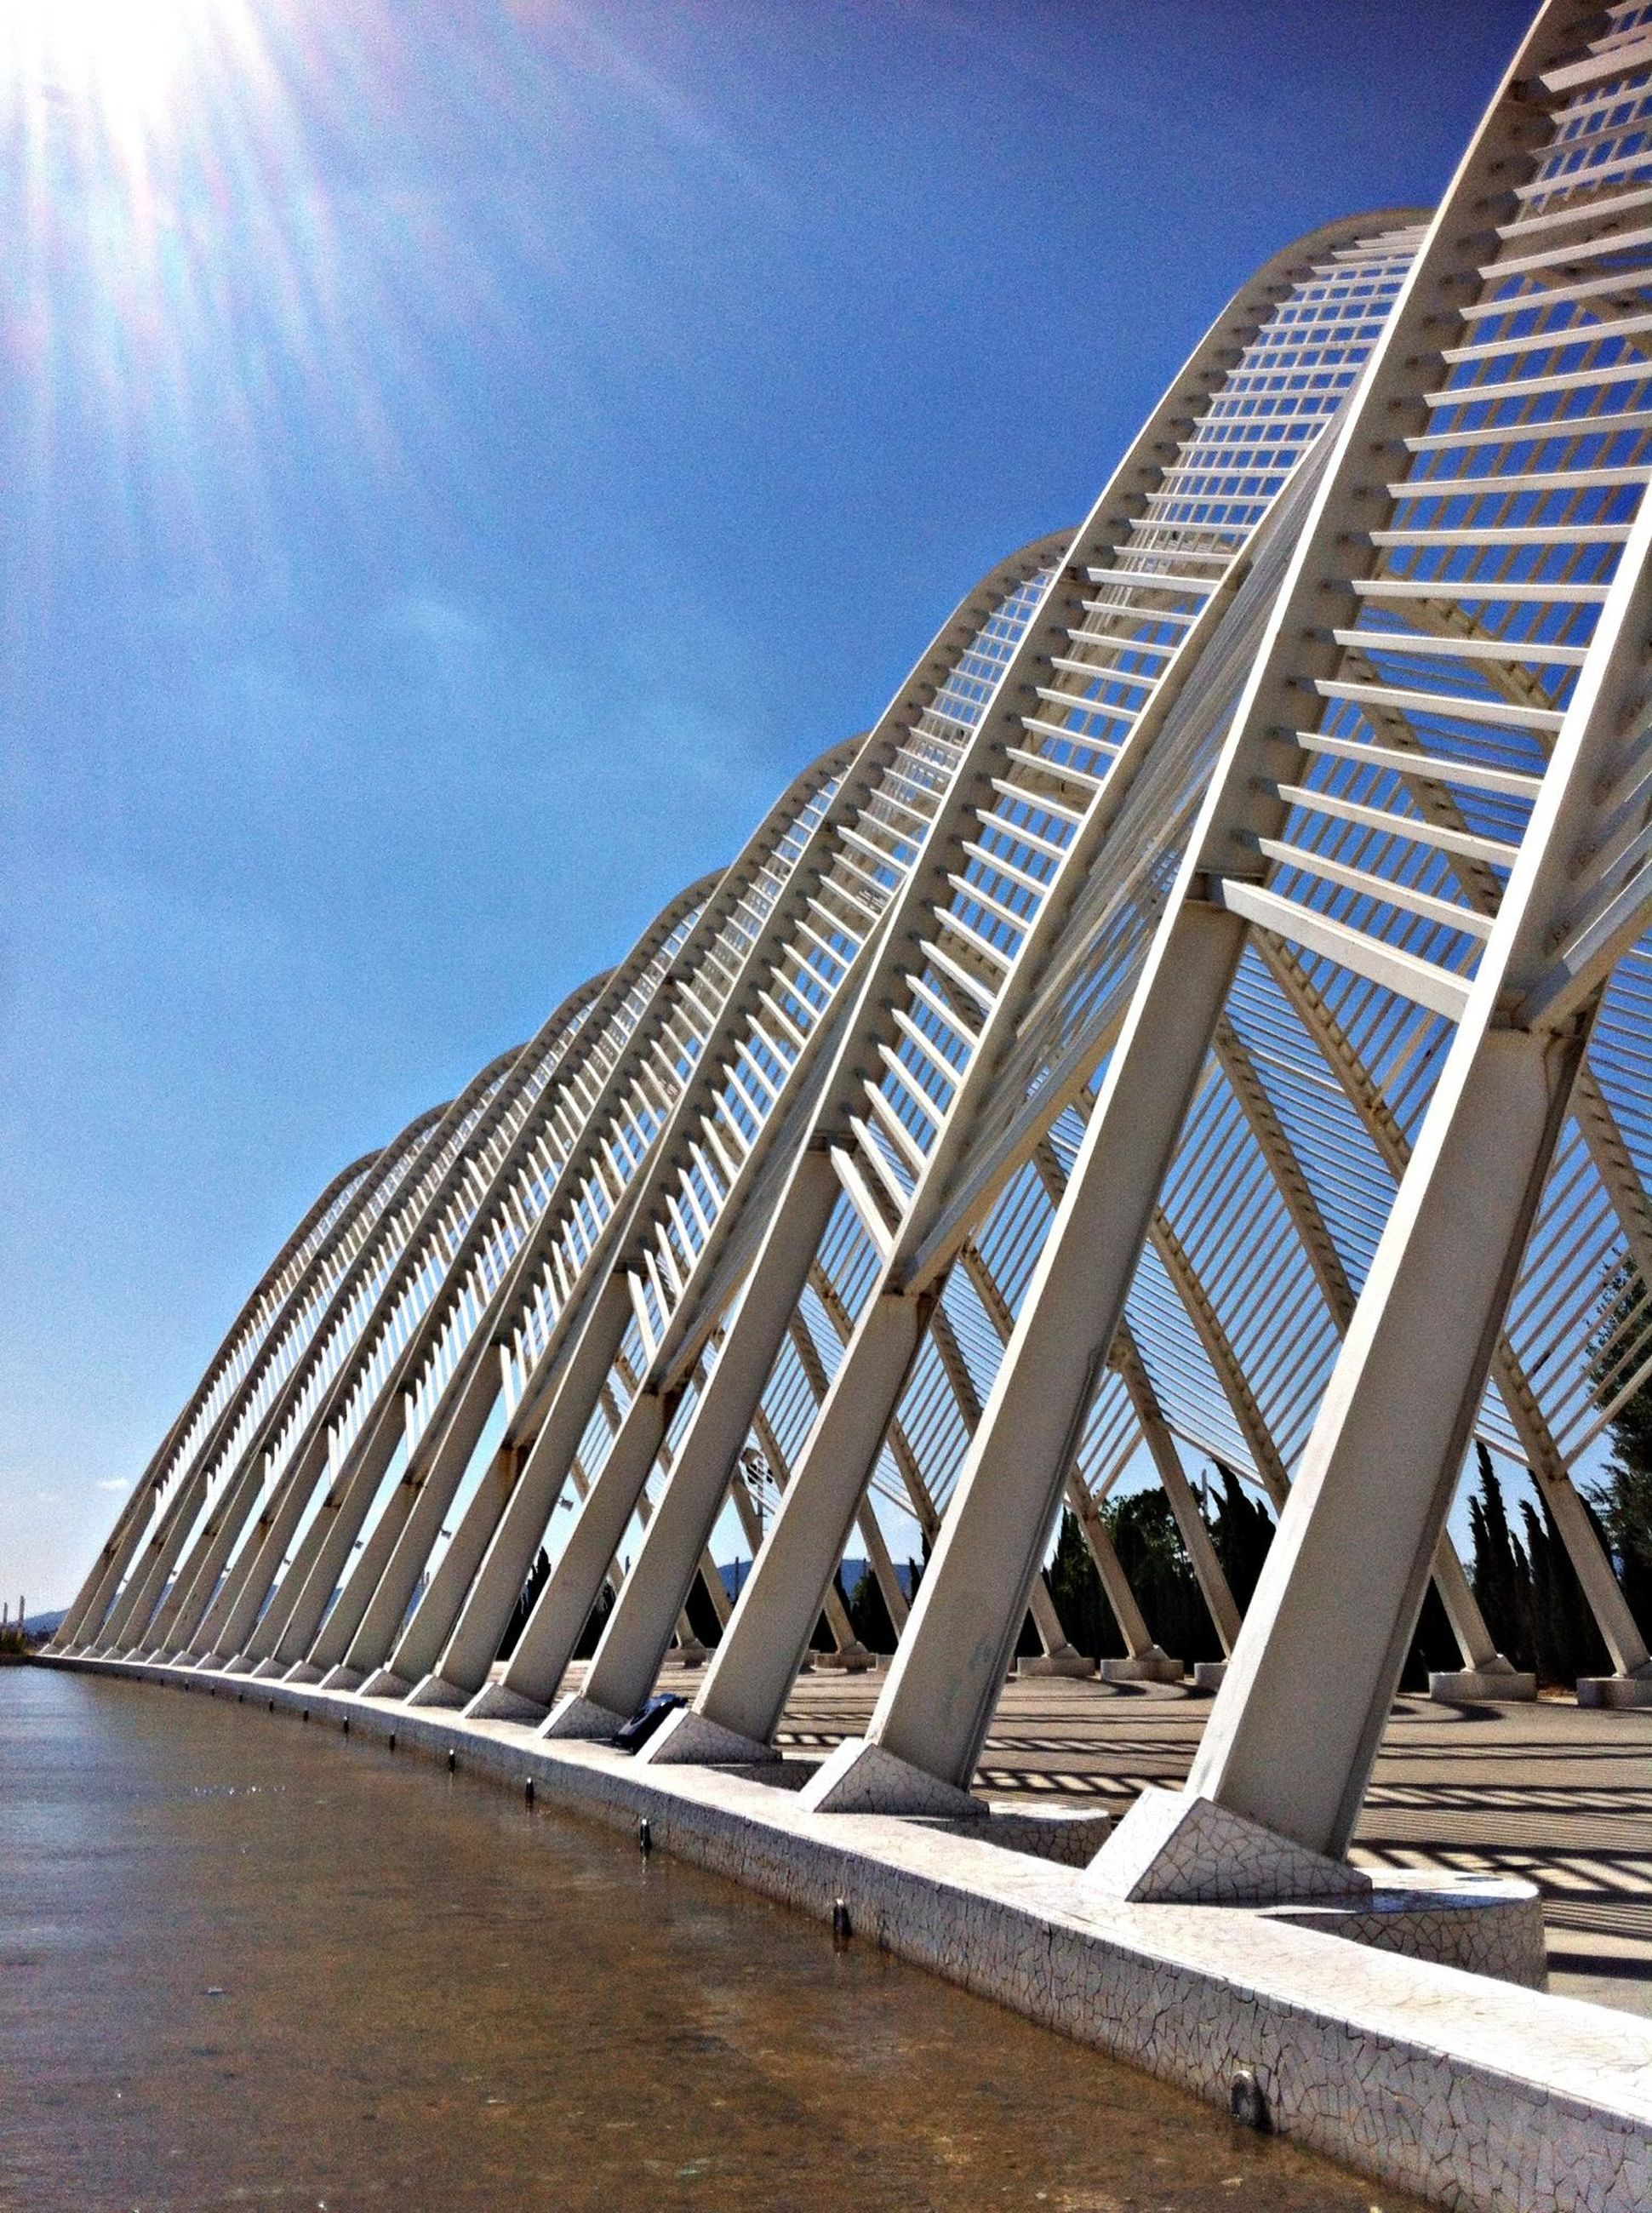 architecture, built structure, low angle view, sunlight, building exterior, sky, blue, sunbeam, sunny, modern, railing, sun, city, lens flare, tall - high, day, outdoors, clear sky, no people, bridge - man made structure